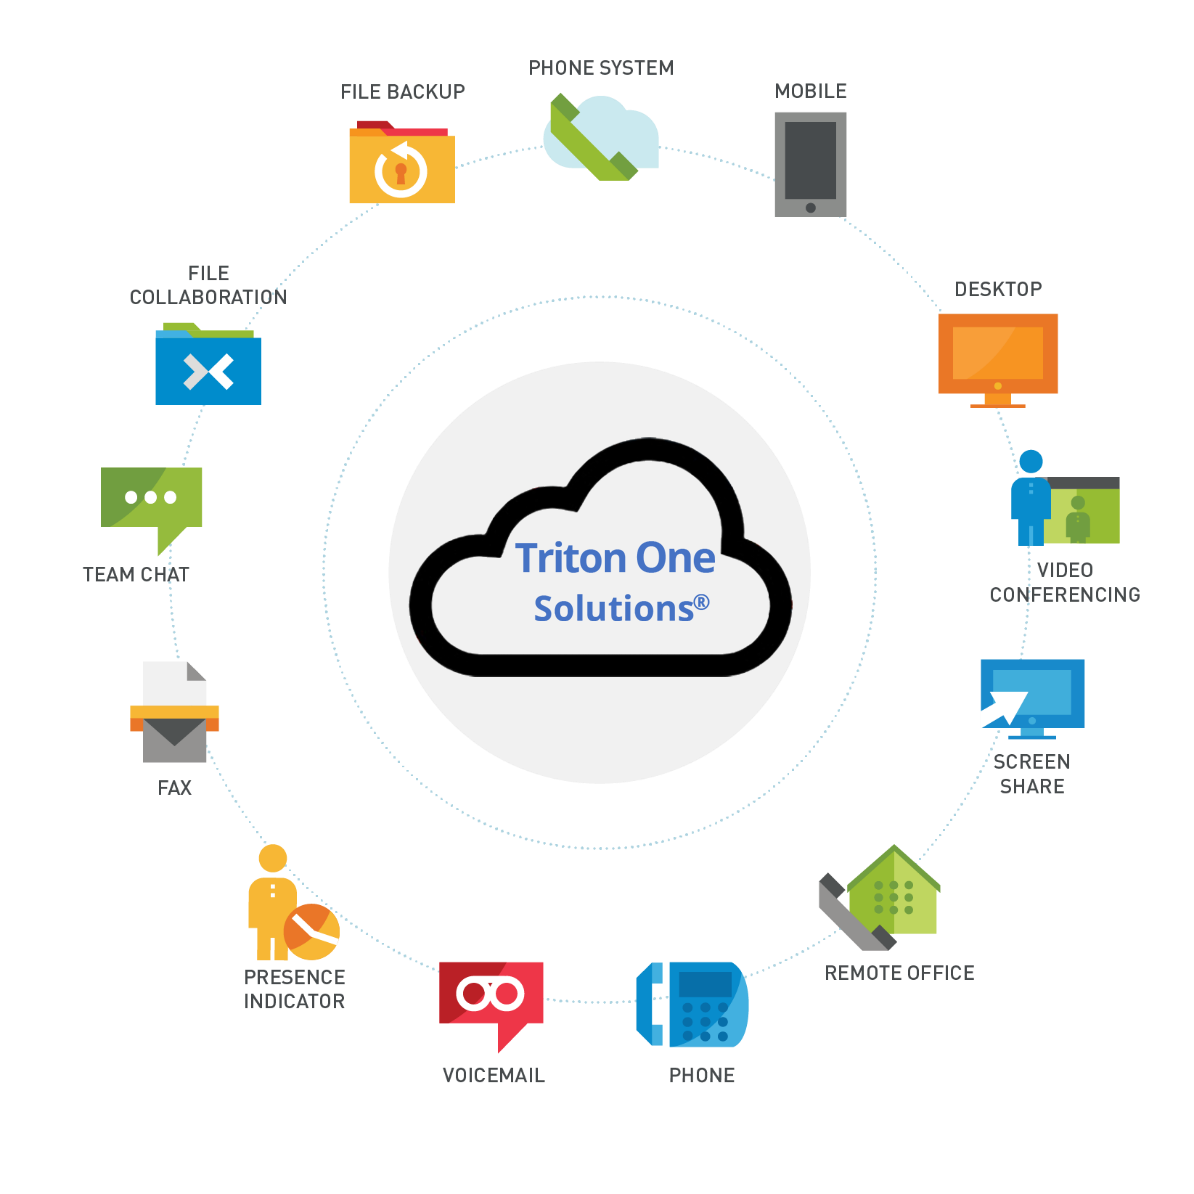 Triton One Solutions® Unified Communications - Wheel Illustration